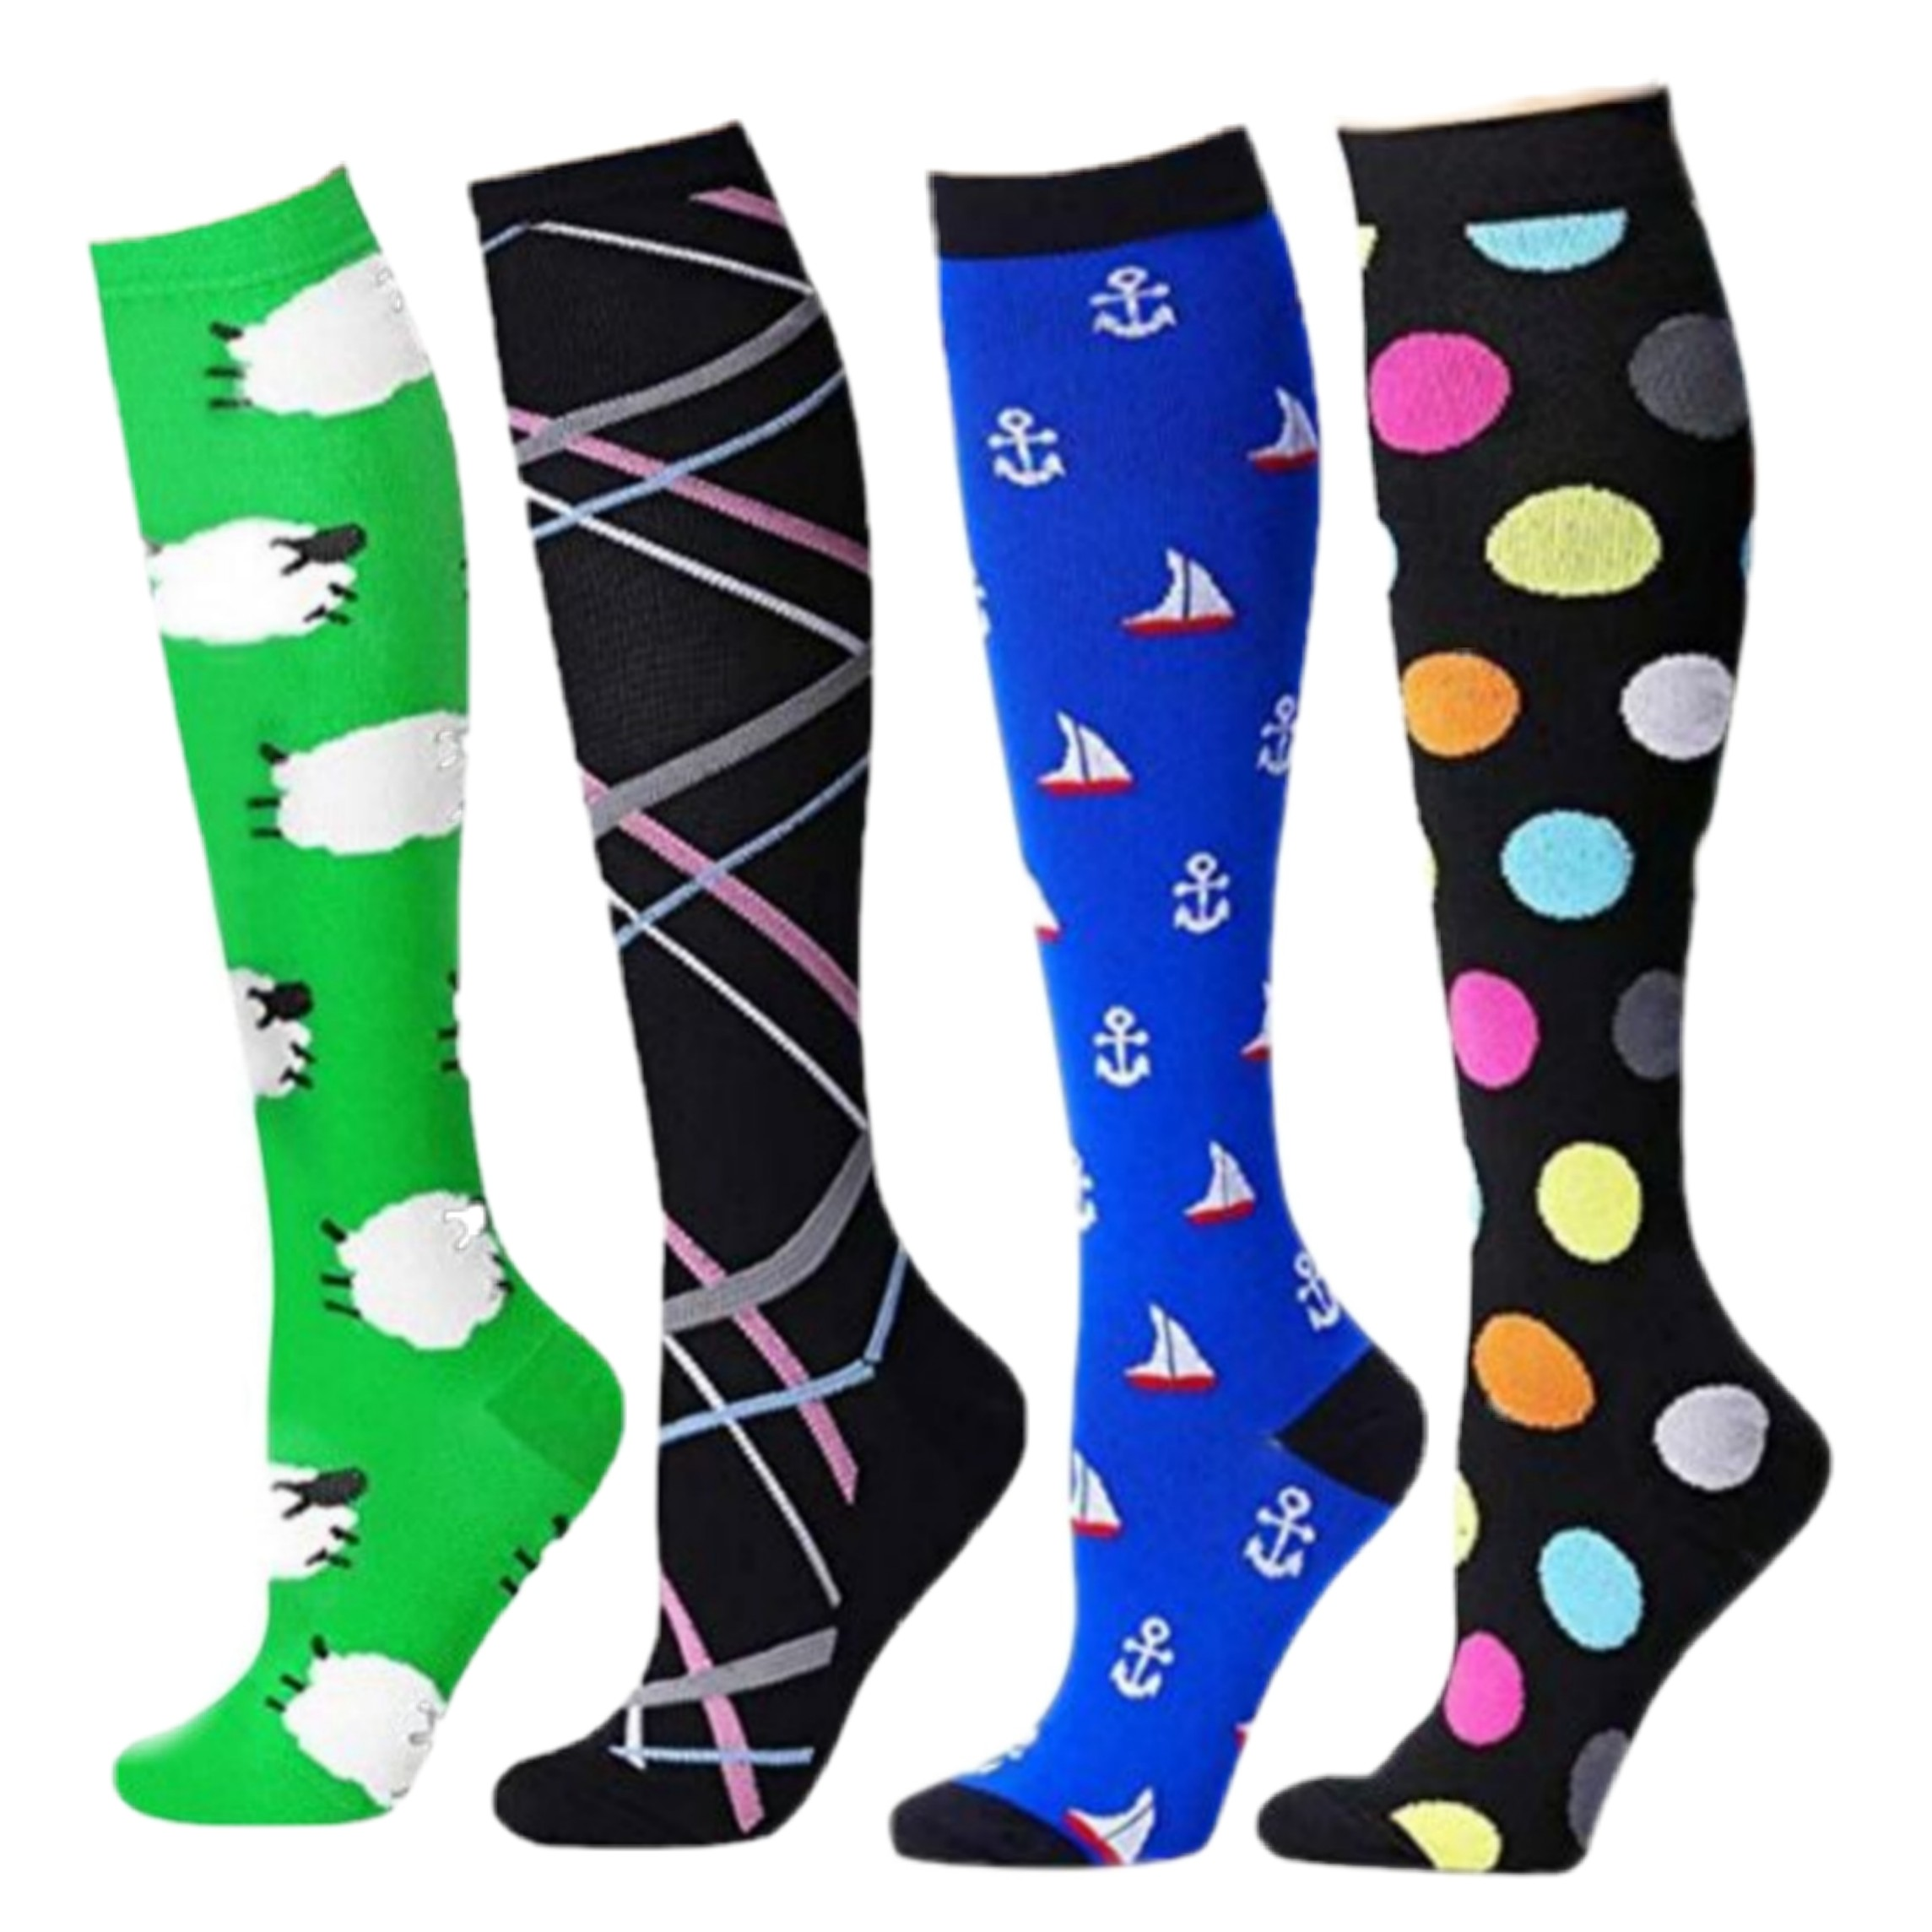 14 Colors Compression Stockings Men Women Medical Varicose Veins ,Diabetic, Swelling For Anti Fatigue Hockey Golf Rugby Socks